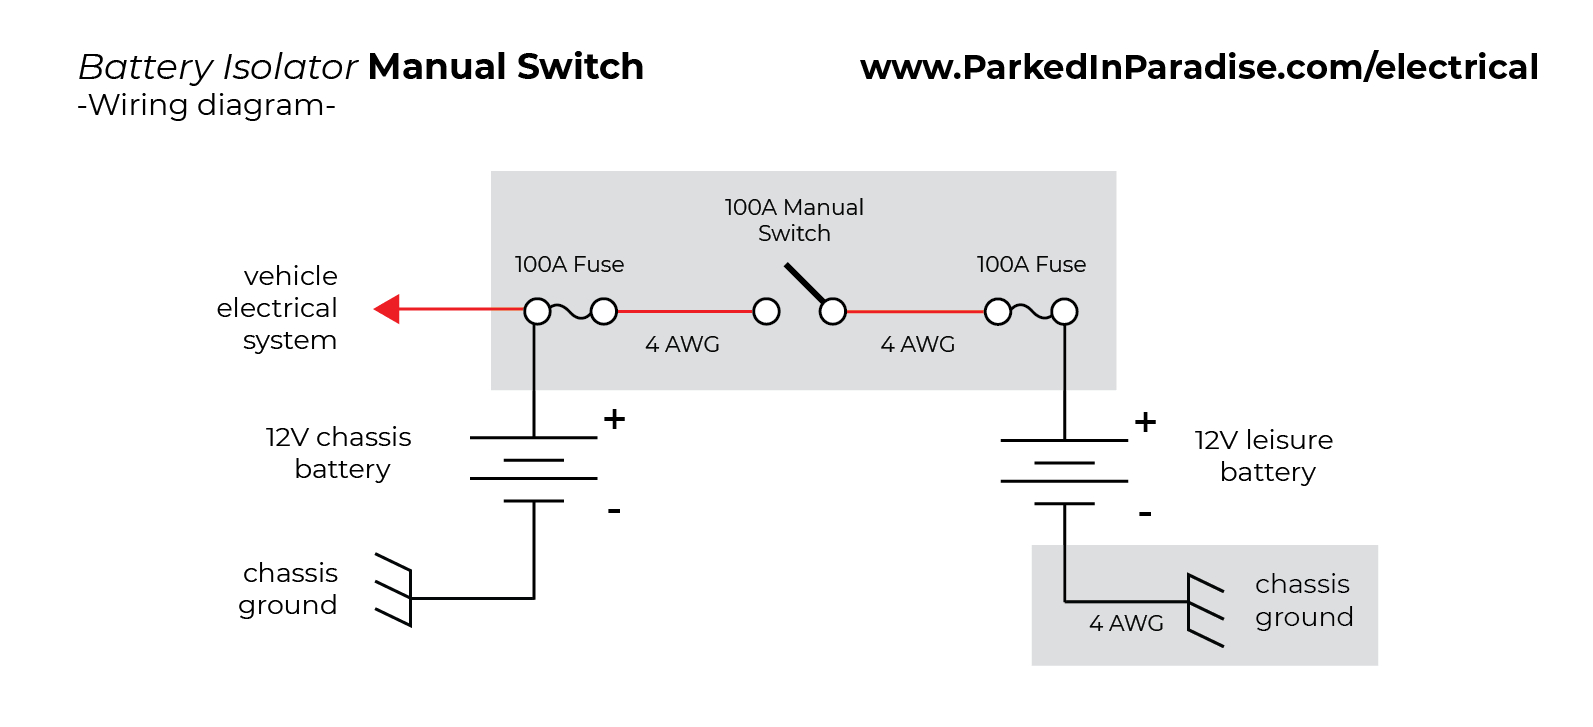 How To Install A Battery Isolator In Your Conversion Van | Parked In - Battery Isolator Wiring Diagram